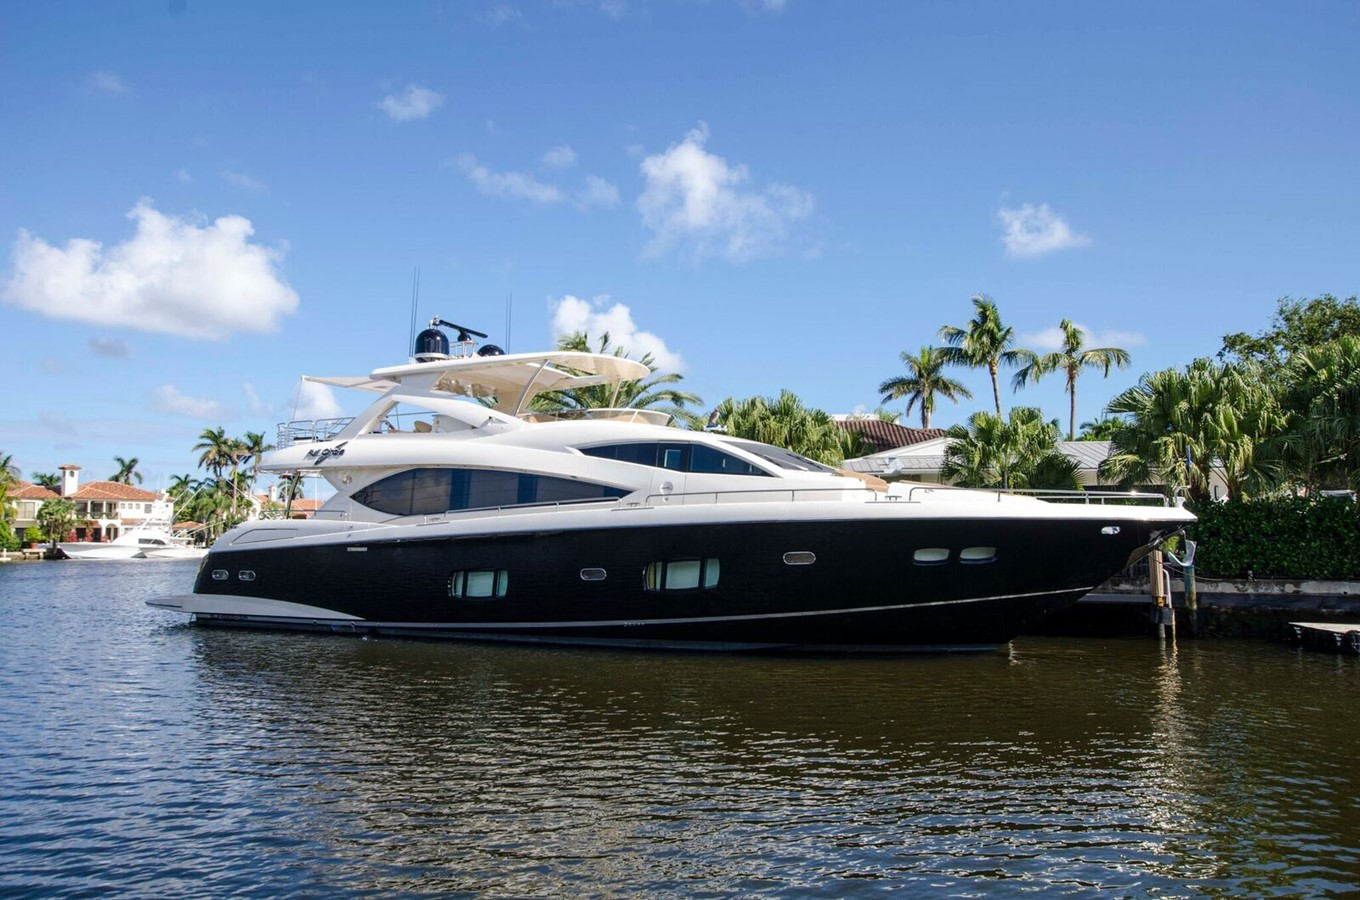 2014 SUNSEEKER 88 Yacht For Sale